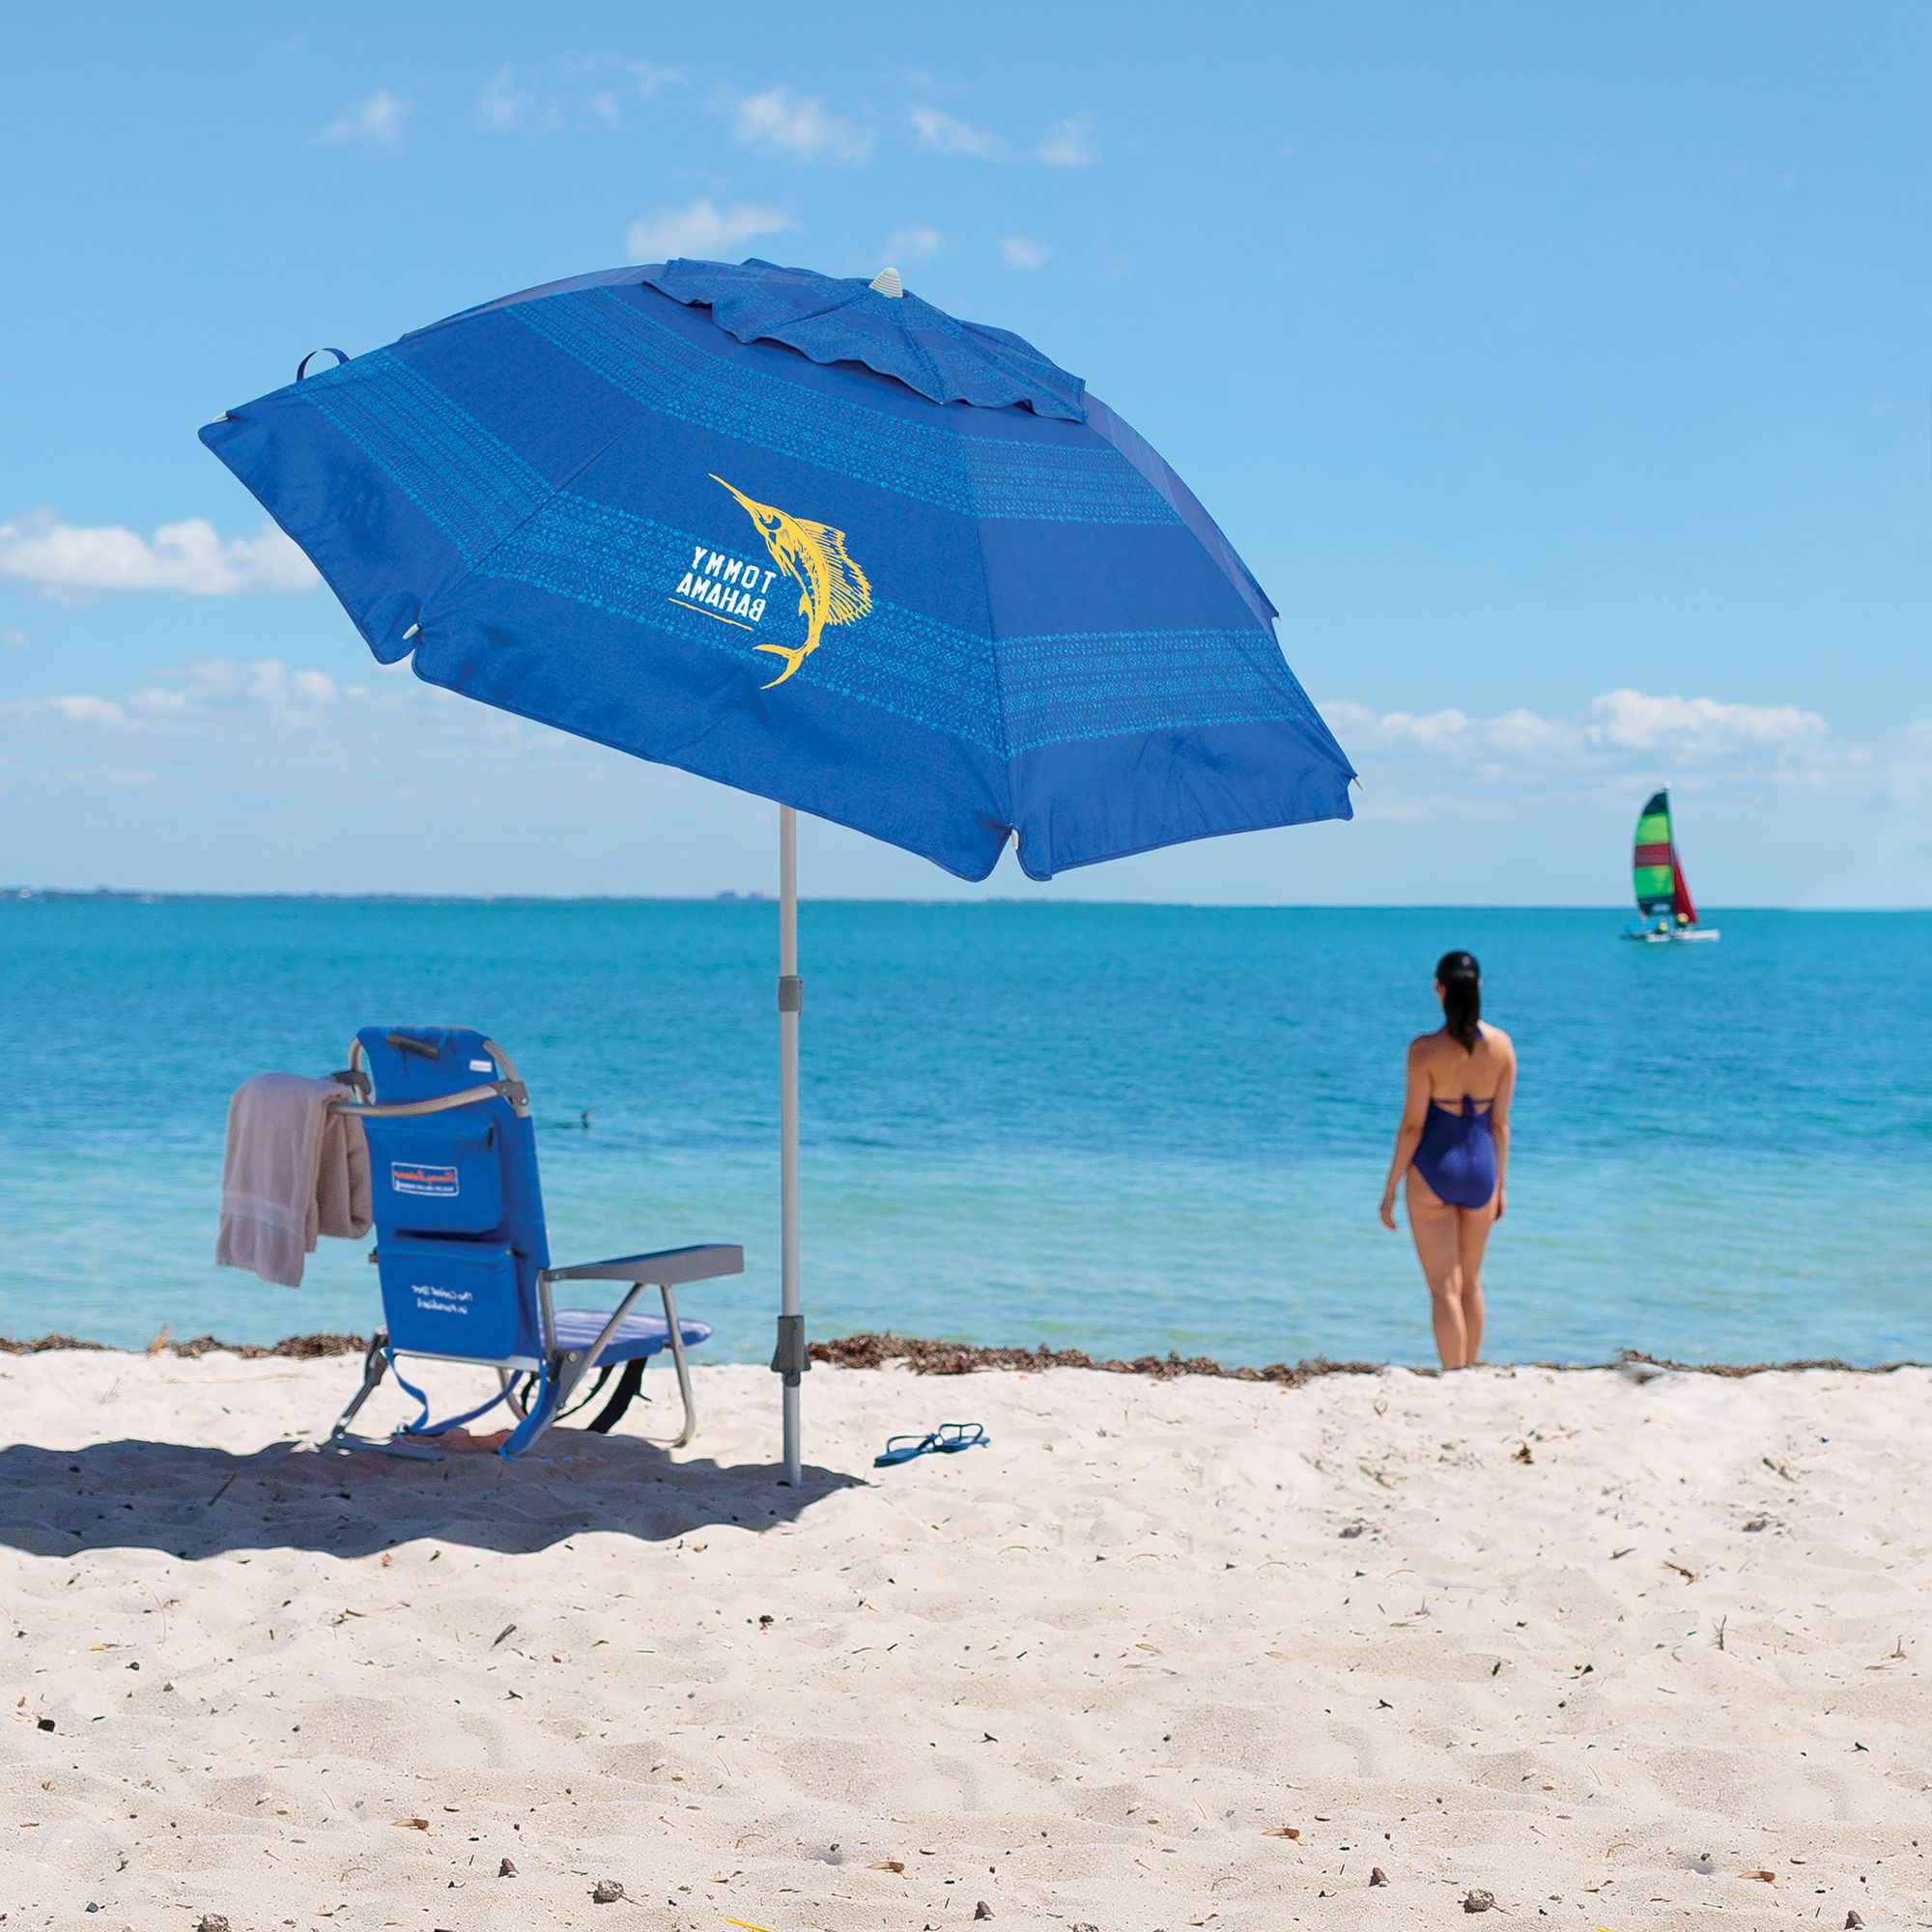 Tommy Bahama Beach Umbrella With Most Recent Tilt Beach Umbrellas (View 10 of 20)